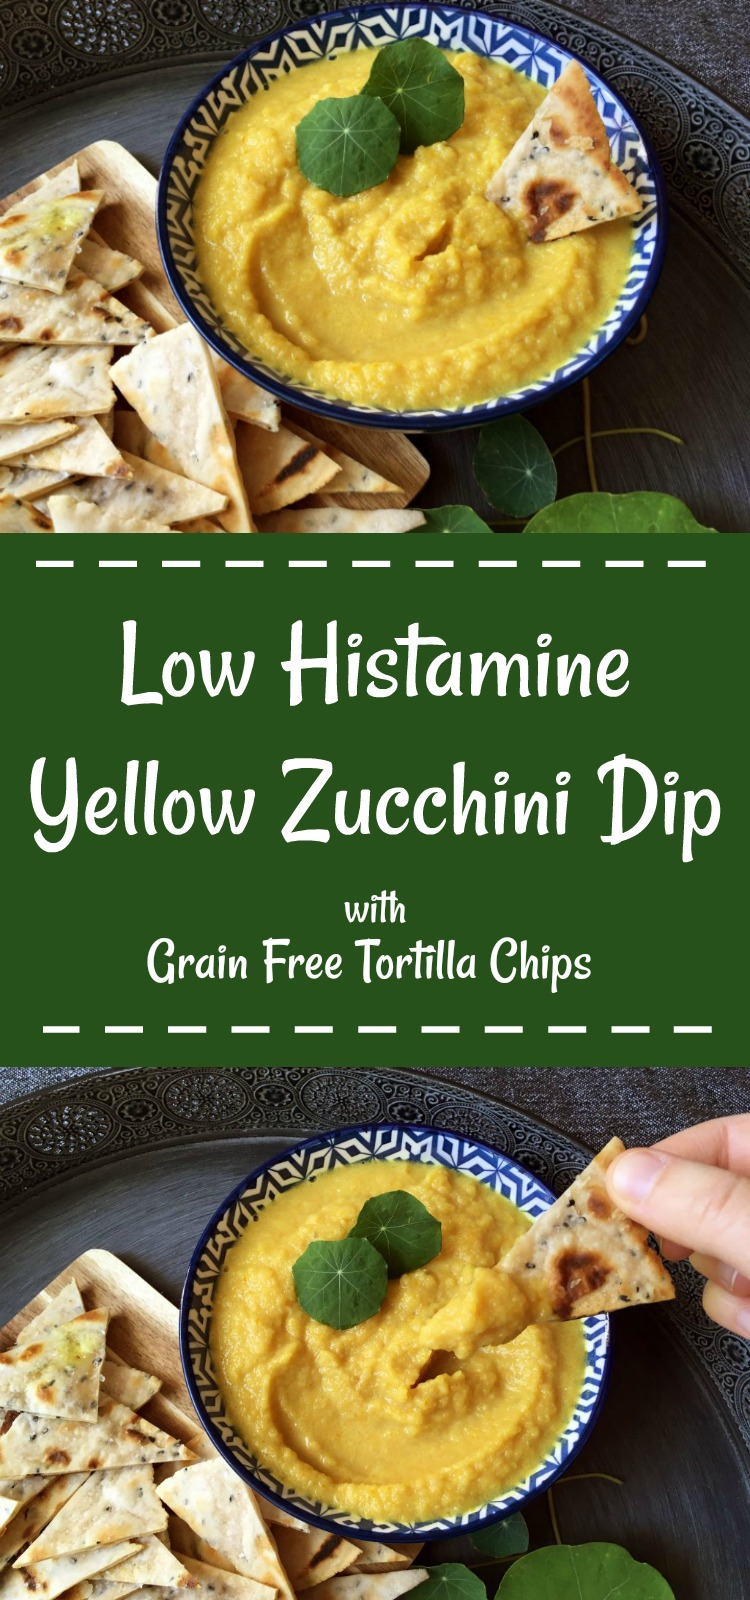 Low Histamine Zucchini Dip - with Grain Free Tortilla Chips \o/ Pin ME!